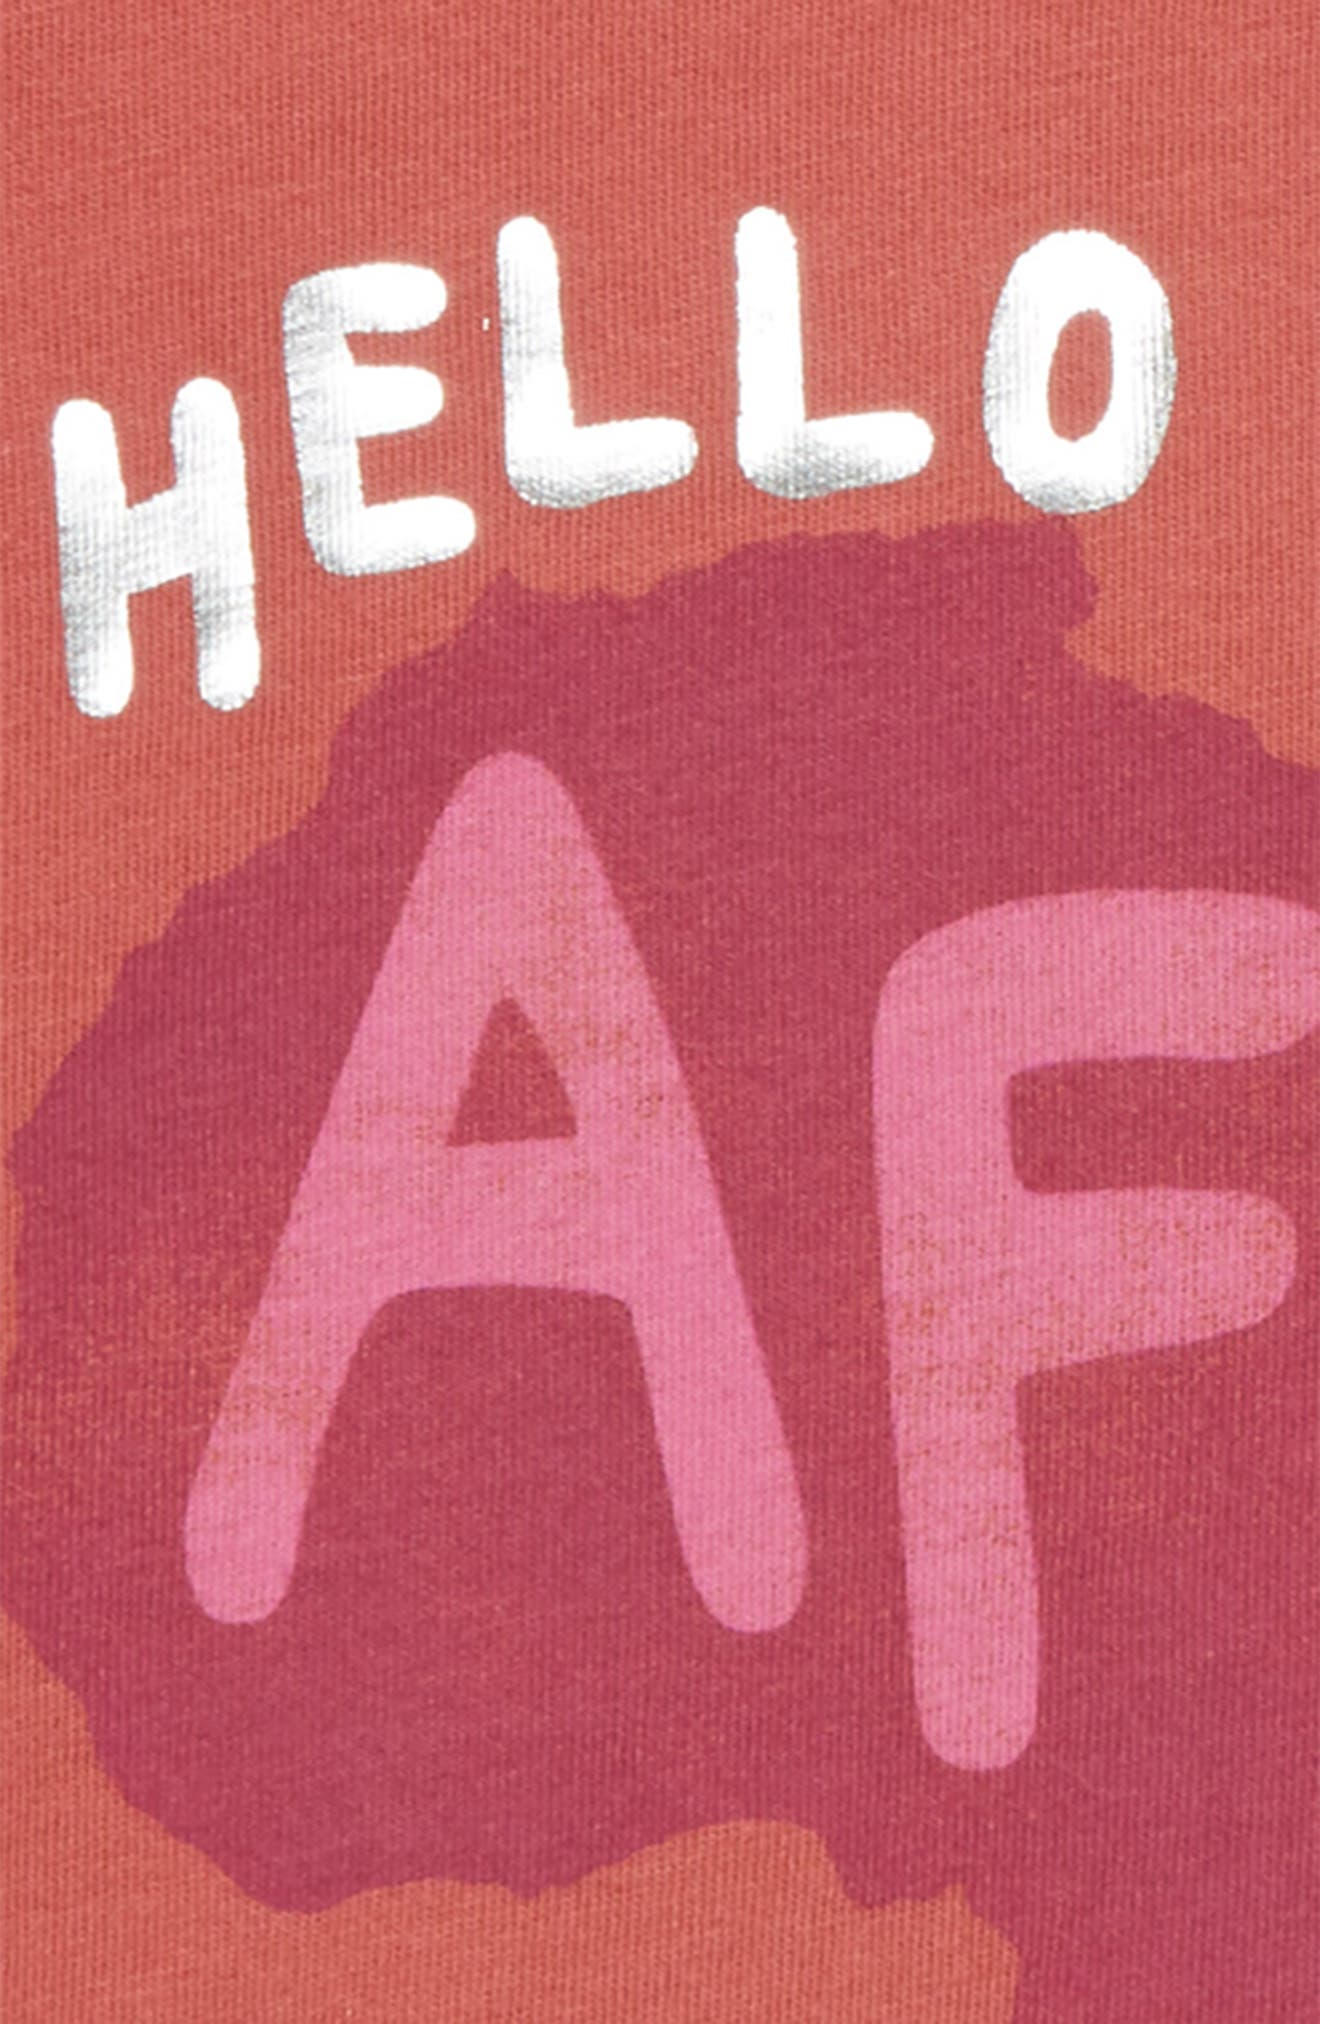 PEEK AREN'T YOU CURIOUS,                             Peek Hello From Africa Graphic Tee,                             Alternate thumbnail 3, color,                             632